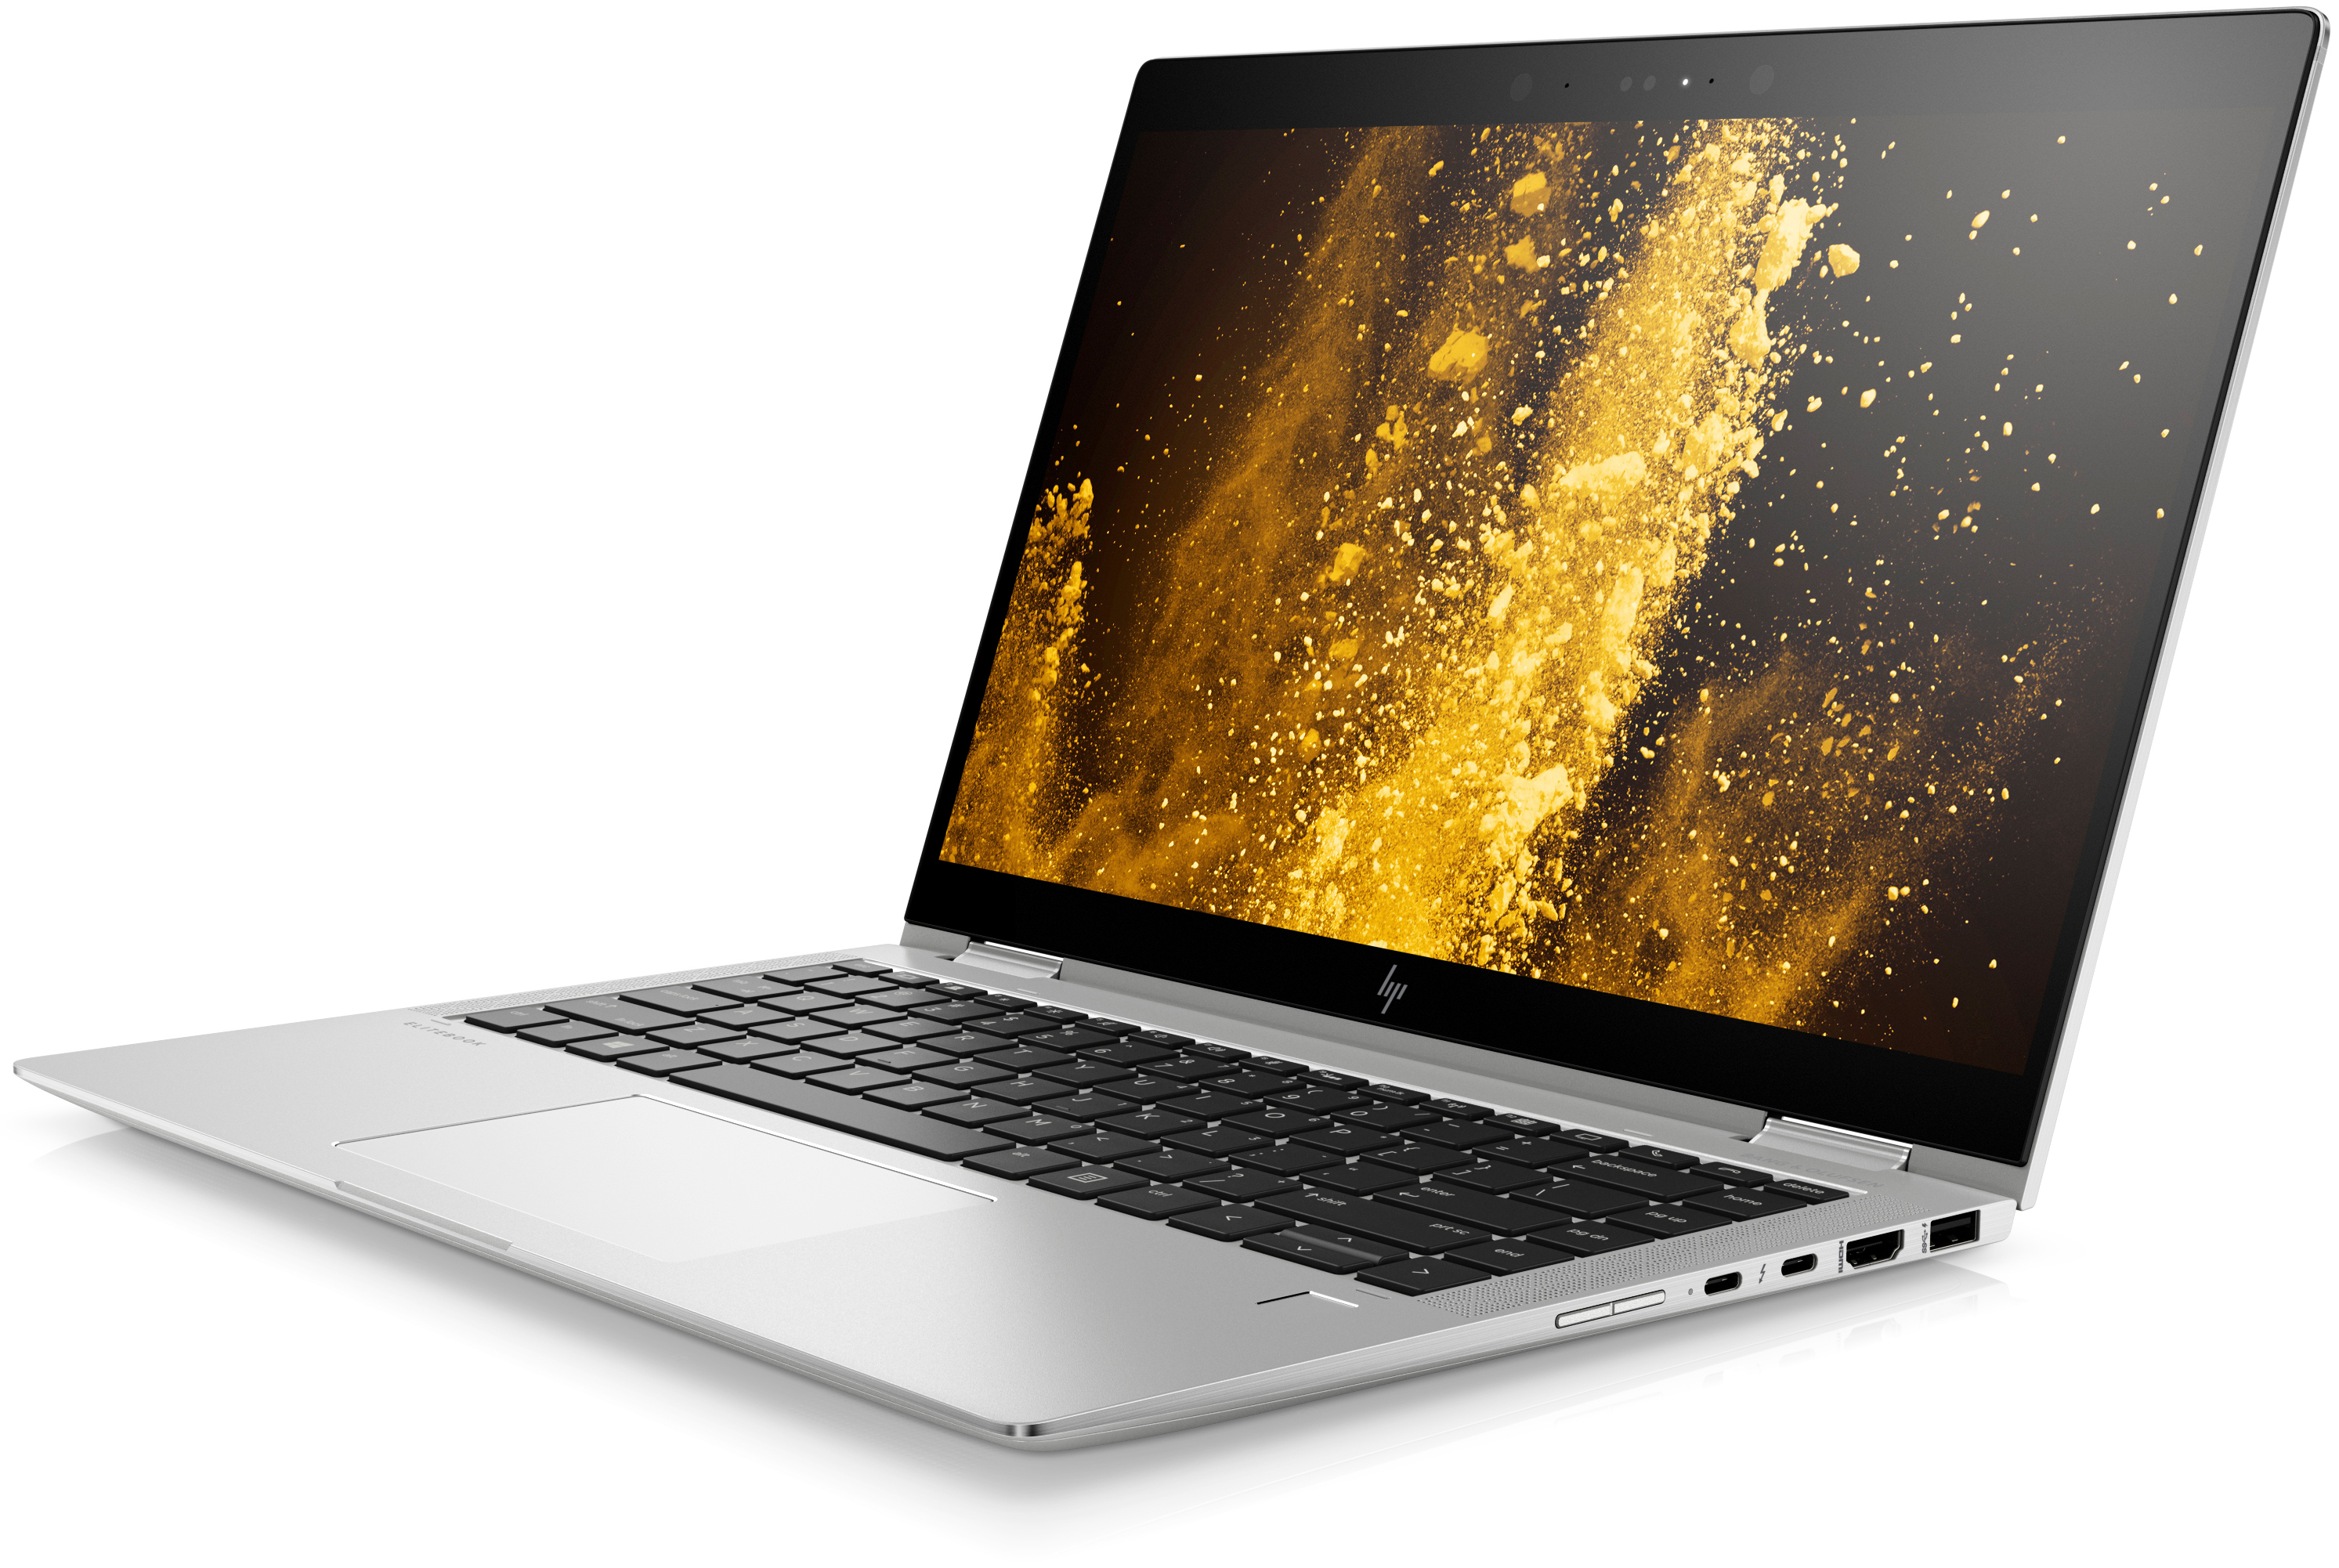 HP Launches EliteBook x360 1040 G5: Now with 14-Inch Display